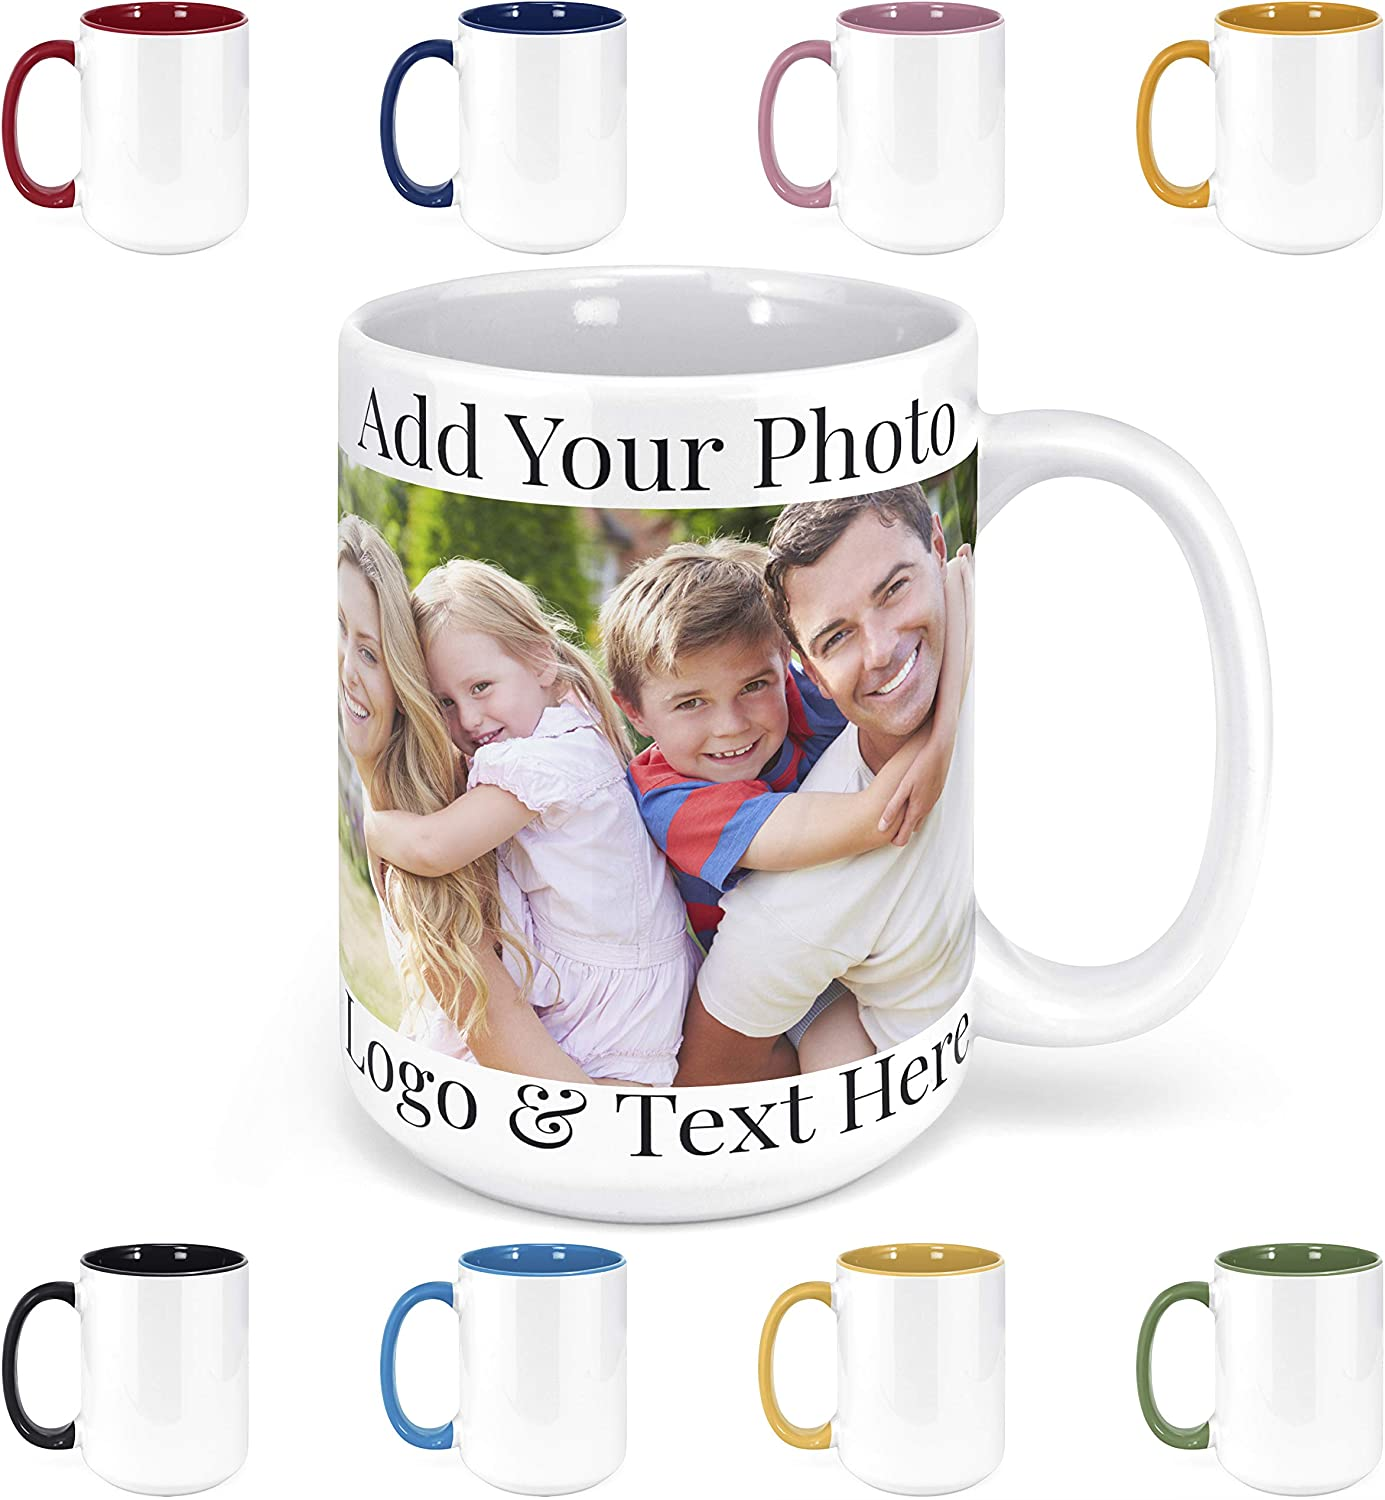 Amazon Com Custom Photo Coffee Mugs 15 Oz Personalized Mugs W Picture Text Name Personalized Gifts For V Day Boyfriend Girlfriend Office Christmas Gifts Custom Mugs With Pictures Taza Personalizadas Kitchen